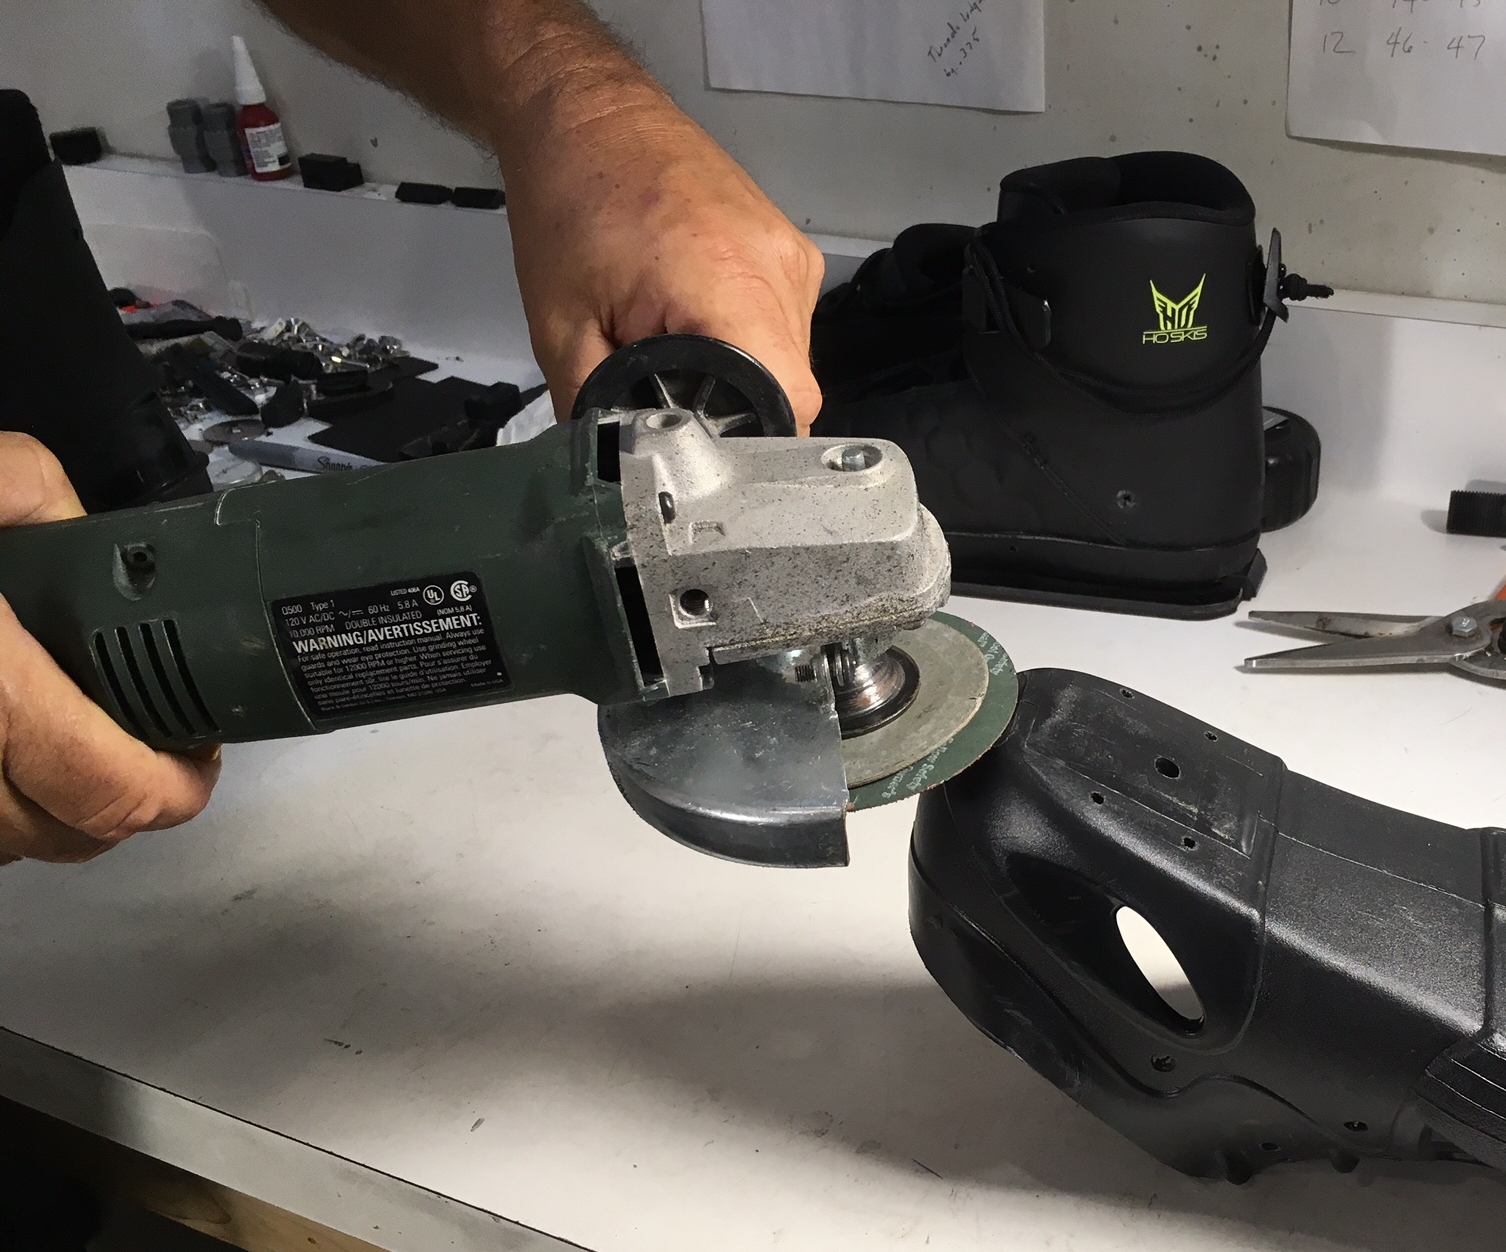 Use grinder w/ sanding pad to trim boots.